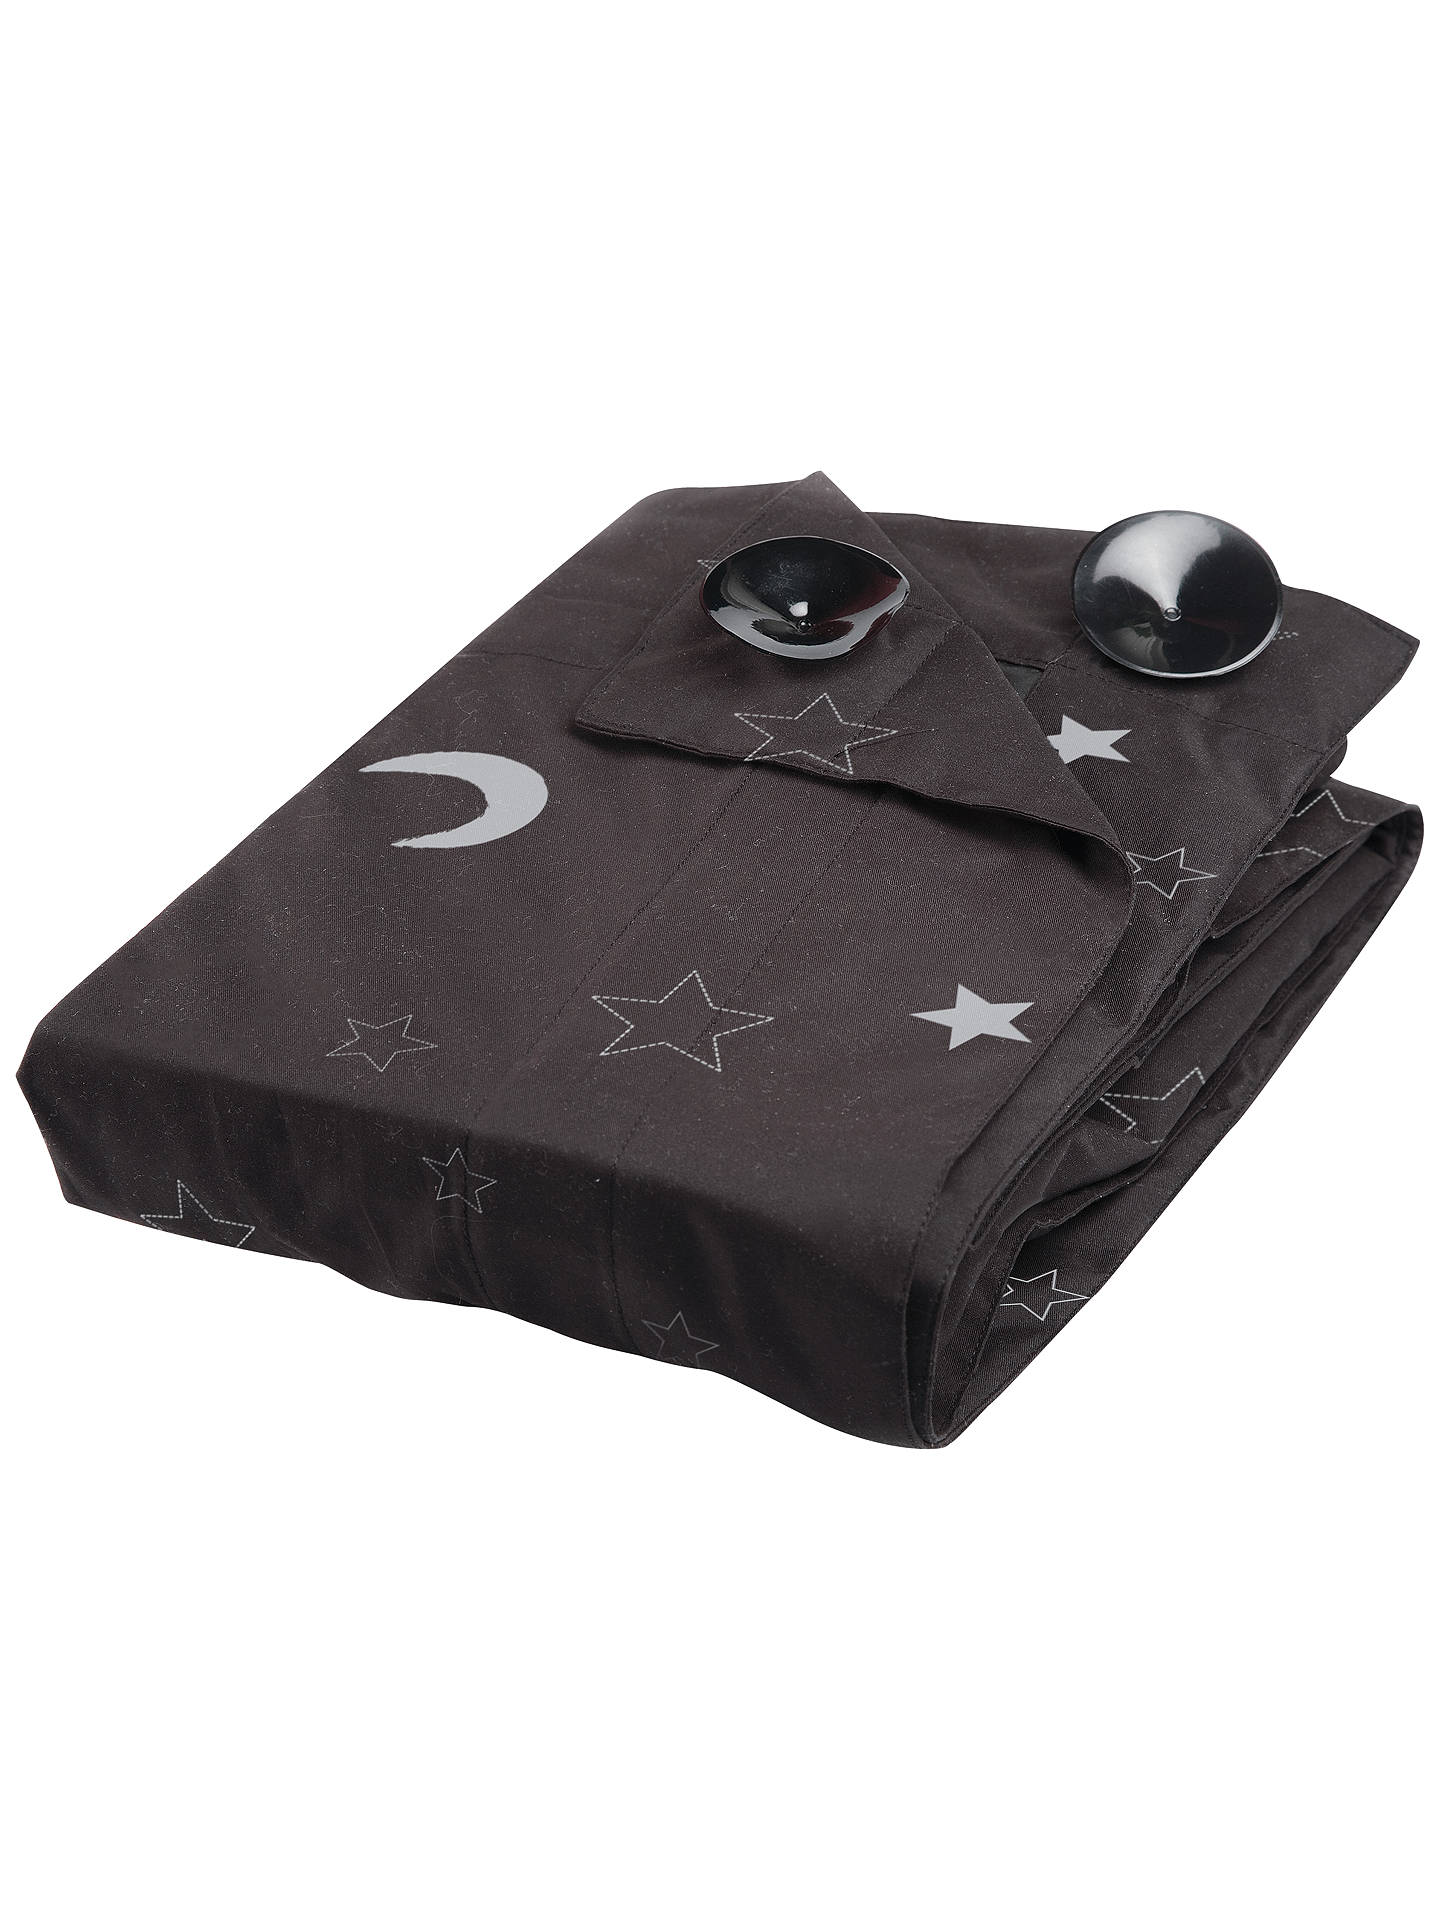 The Gro Company Stars and Moons Gro Anywhere Portable Blackout Blind